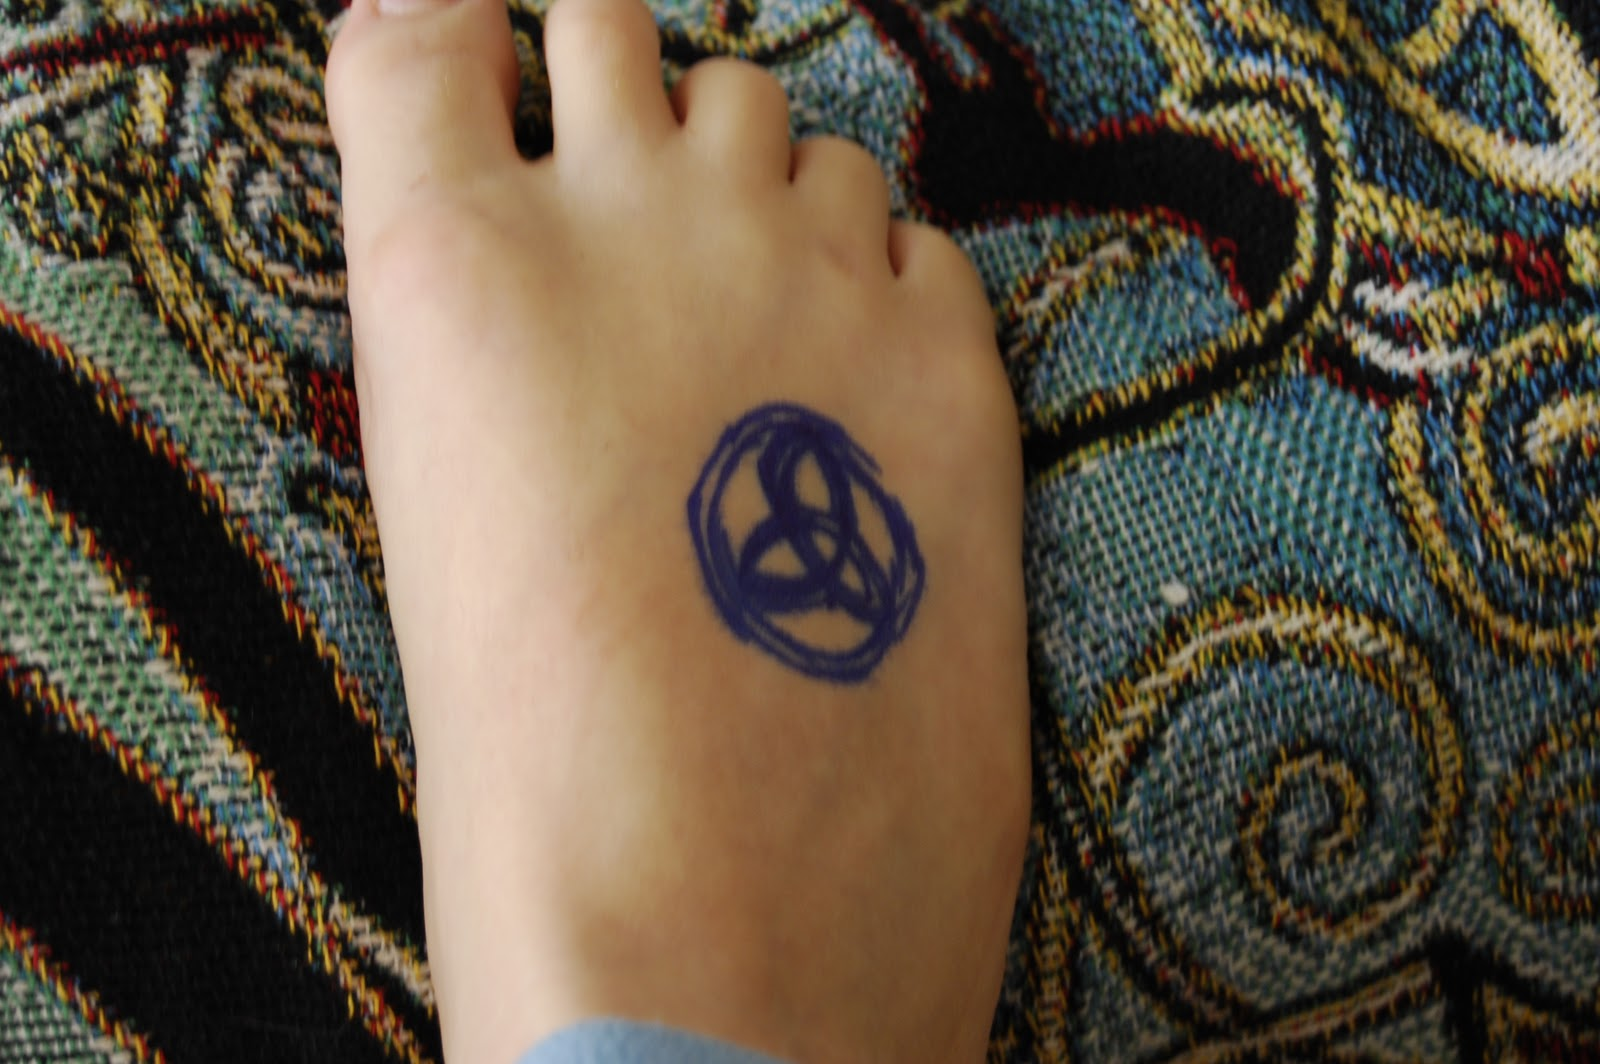 The ditzy druid artist trading cards and temporary foot tattoos